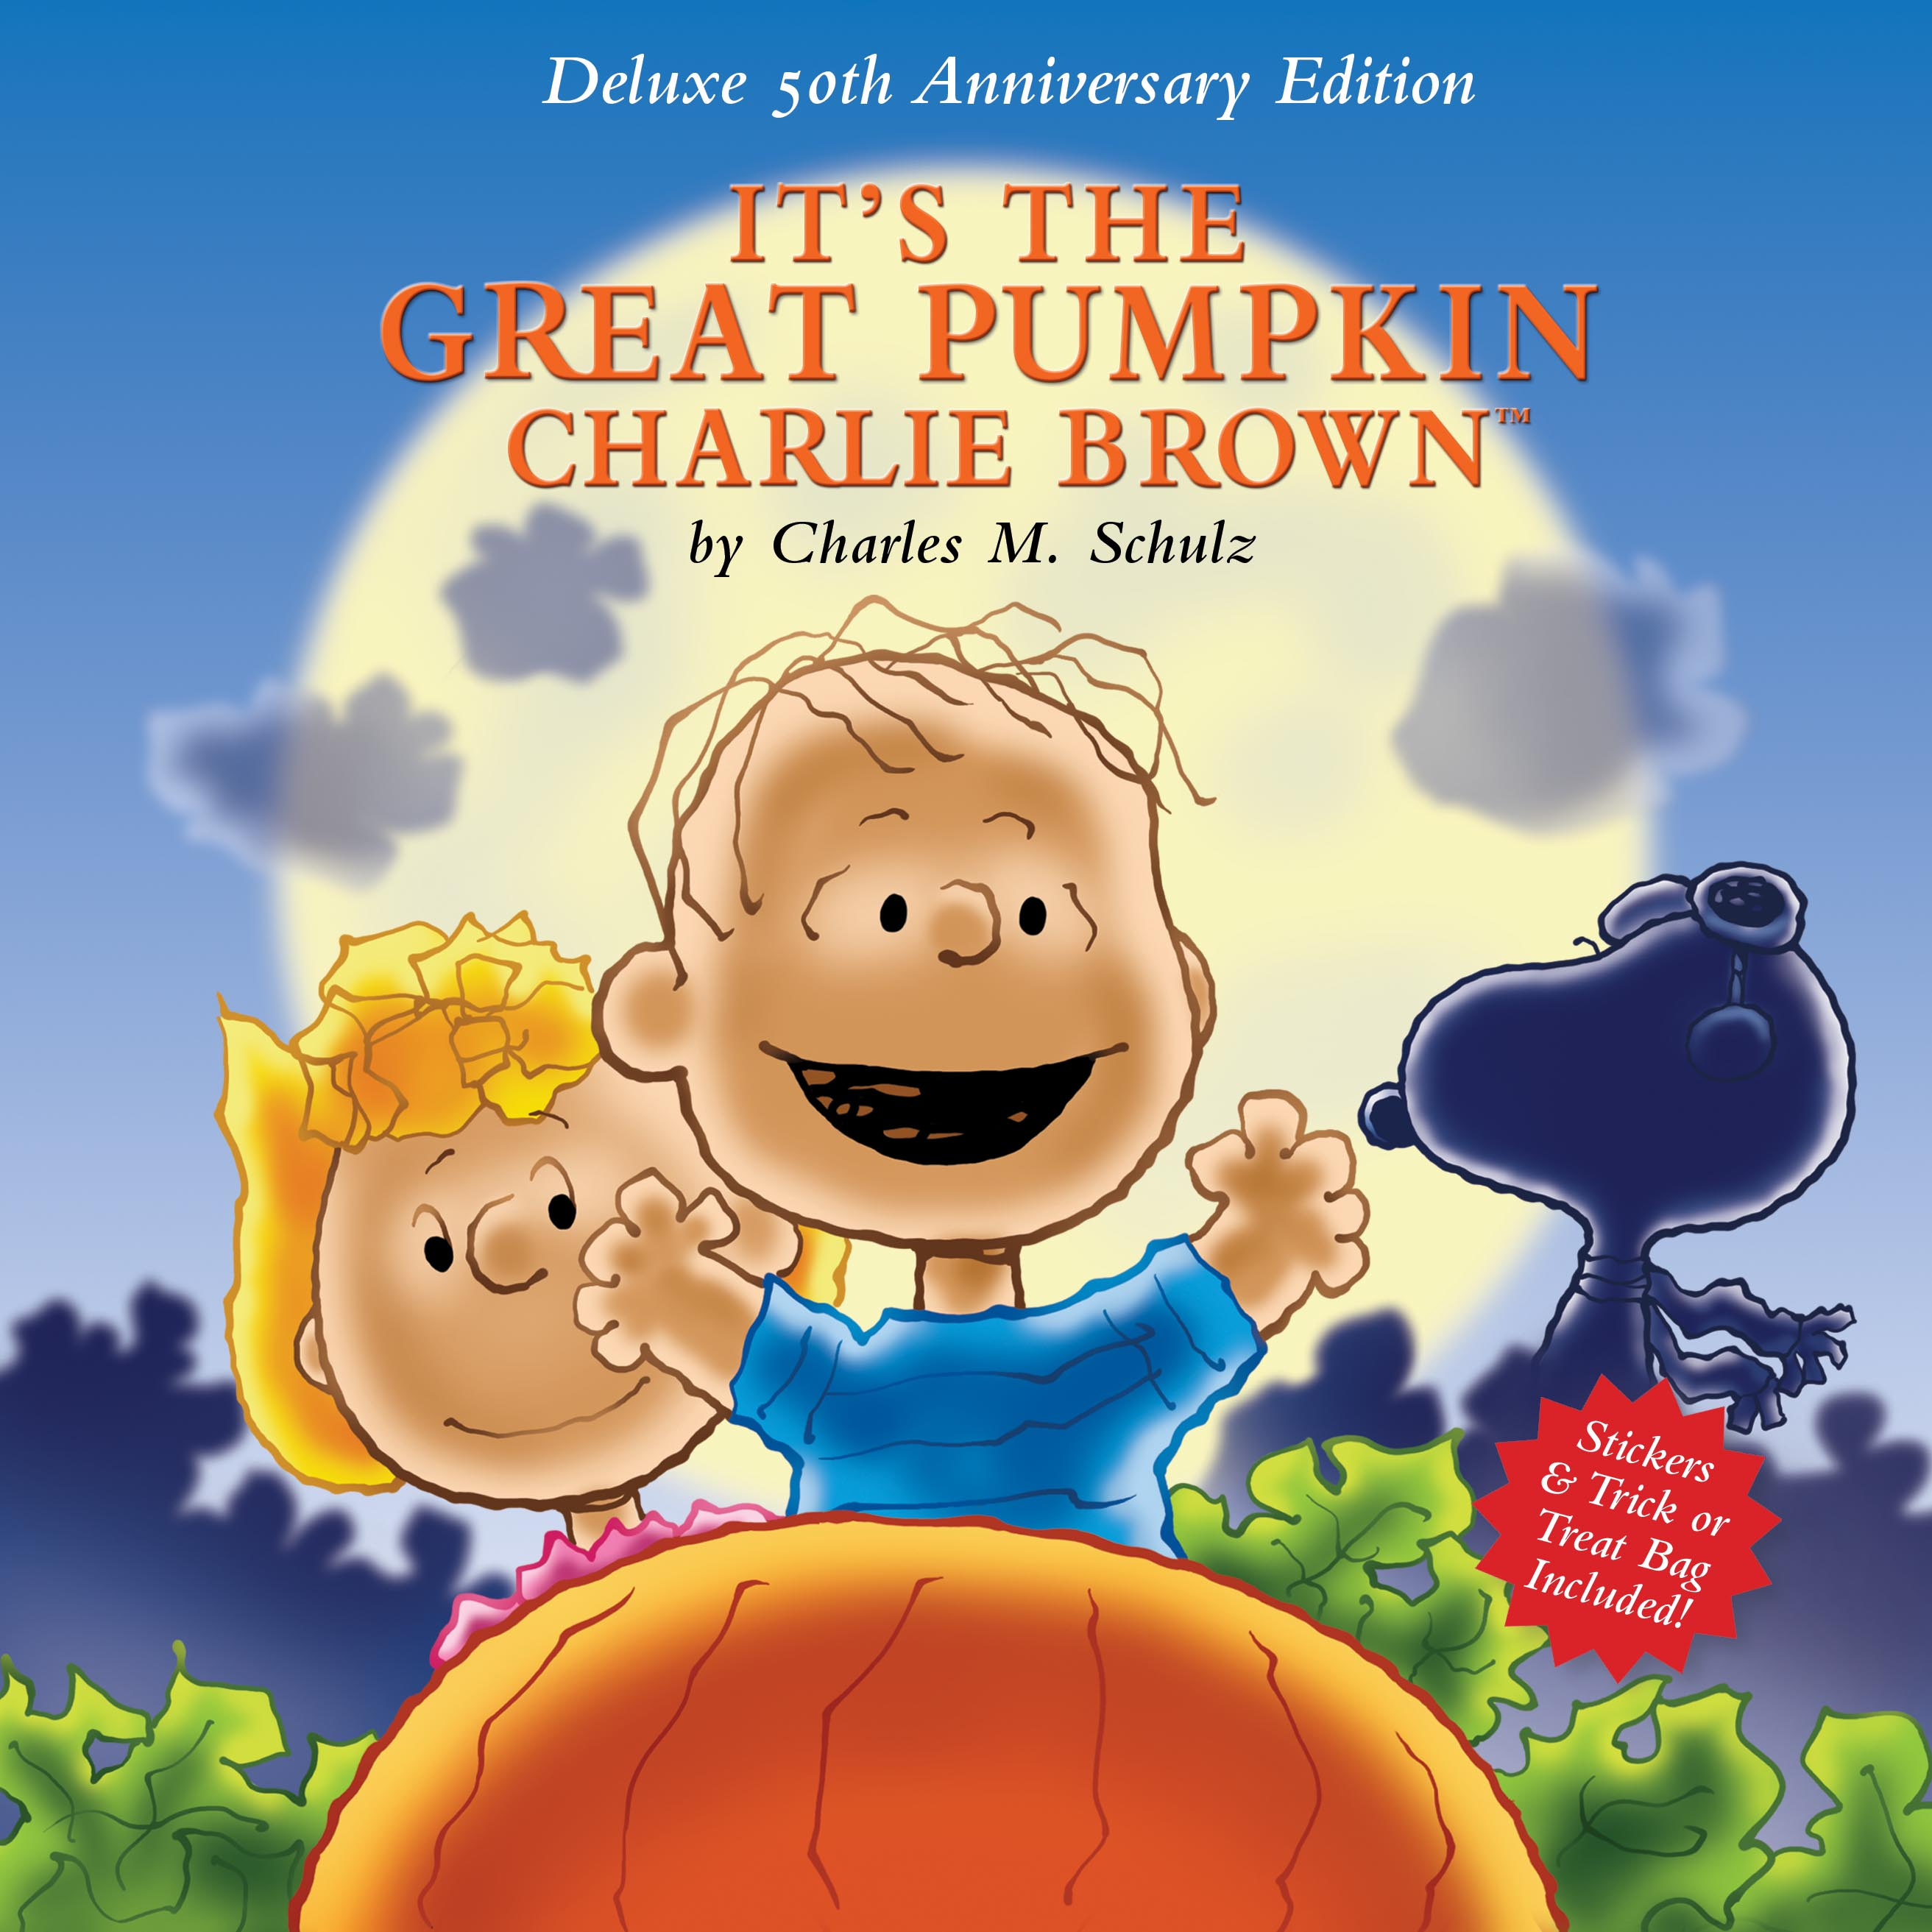 It's The Great Pumpkin, Charlie Brown: 50th Anniversary Edition